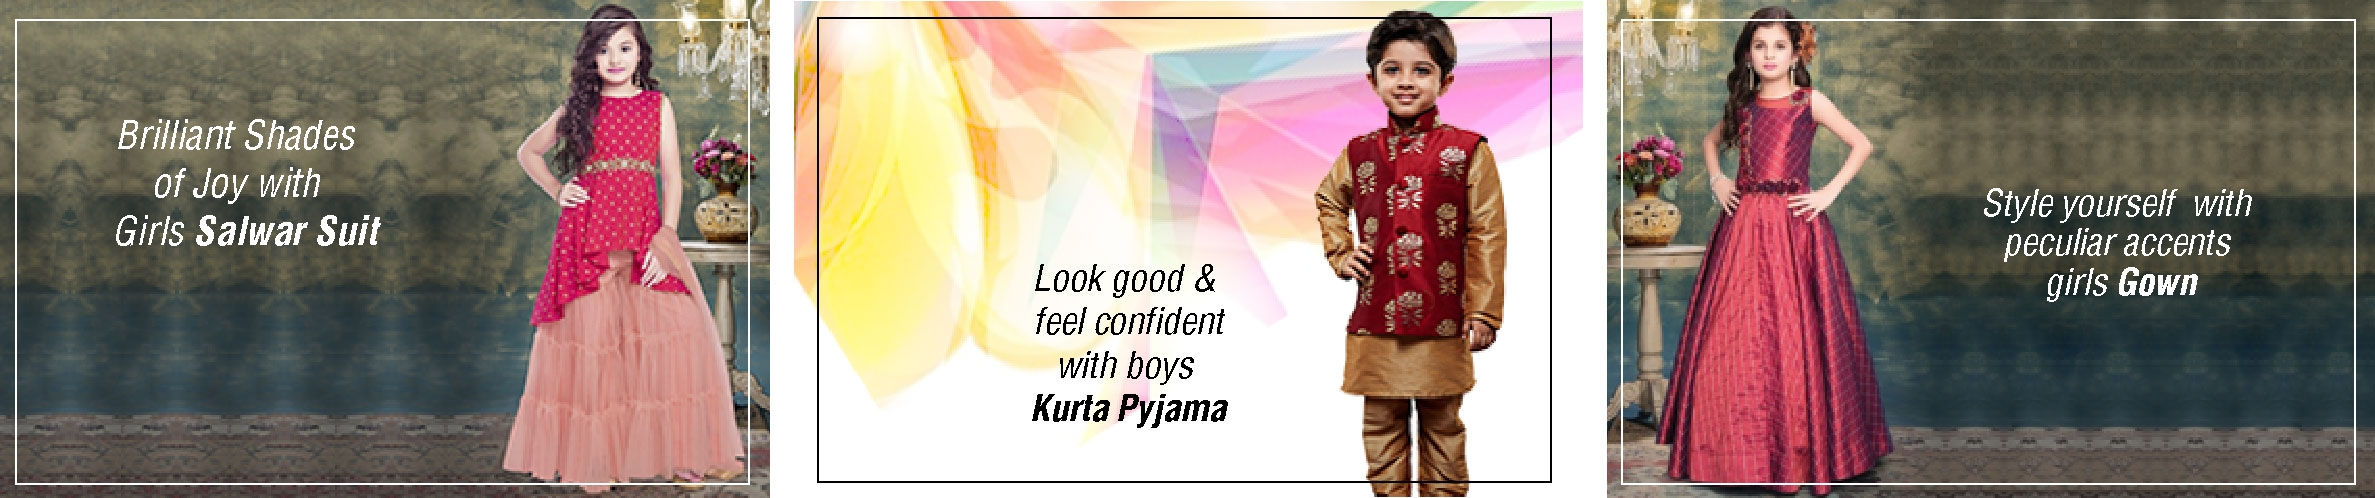 Kids Sarees, Salwars, Lehengas & More collections, shop online